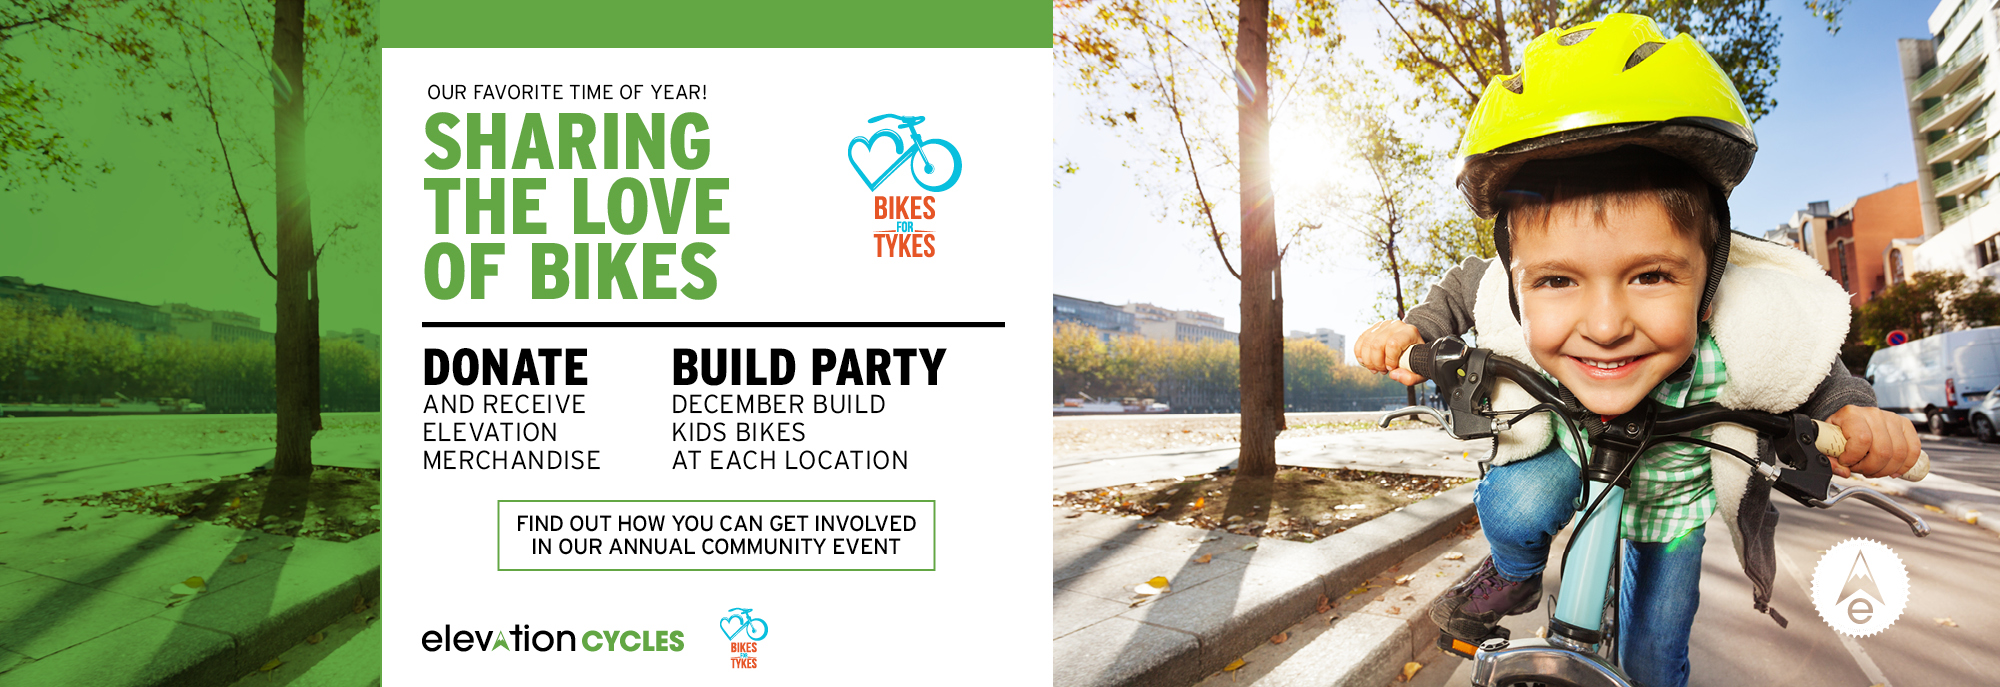 Elevation Cycles Colorado Share the Love of Bikes Fundraiser